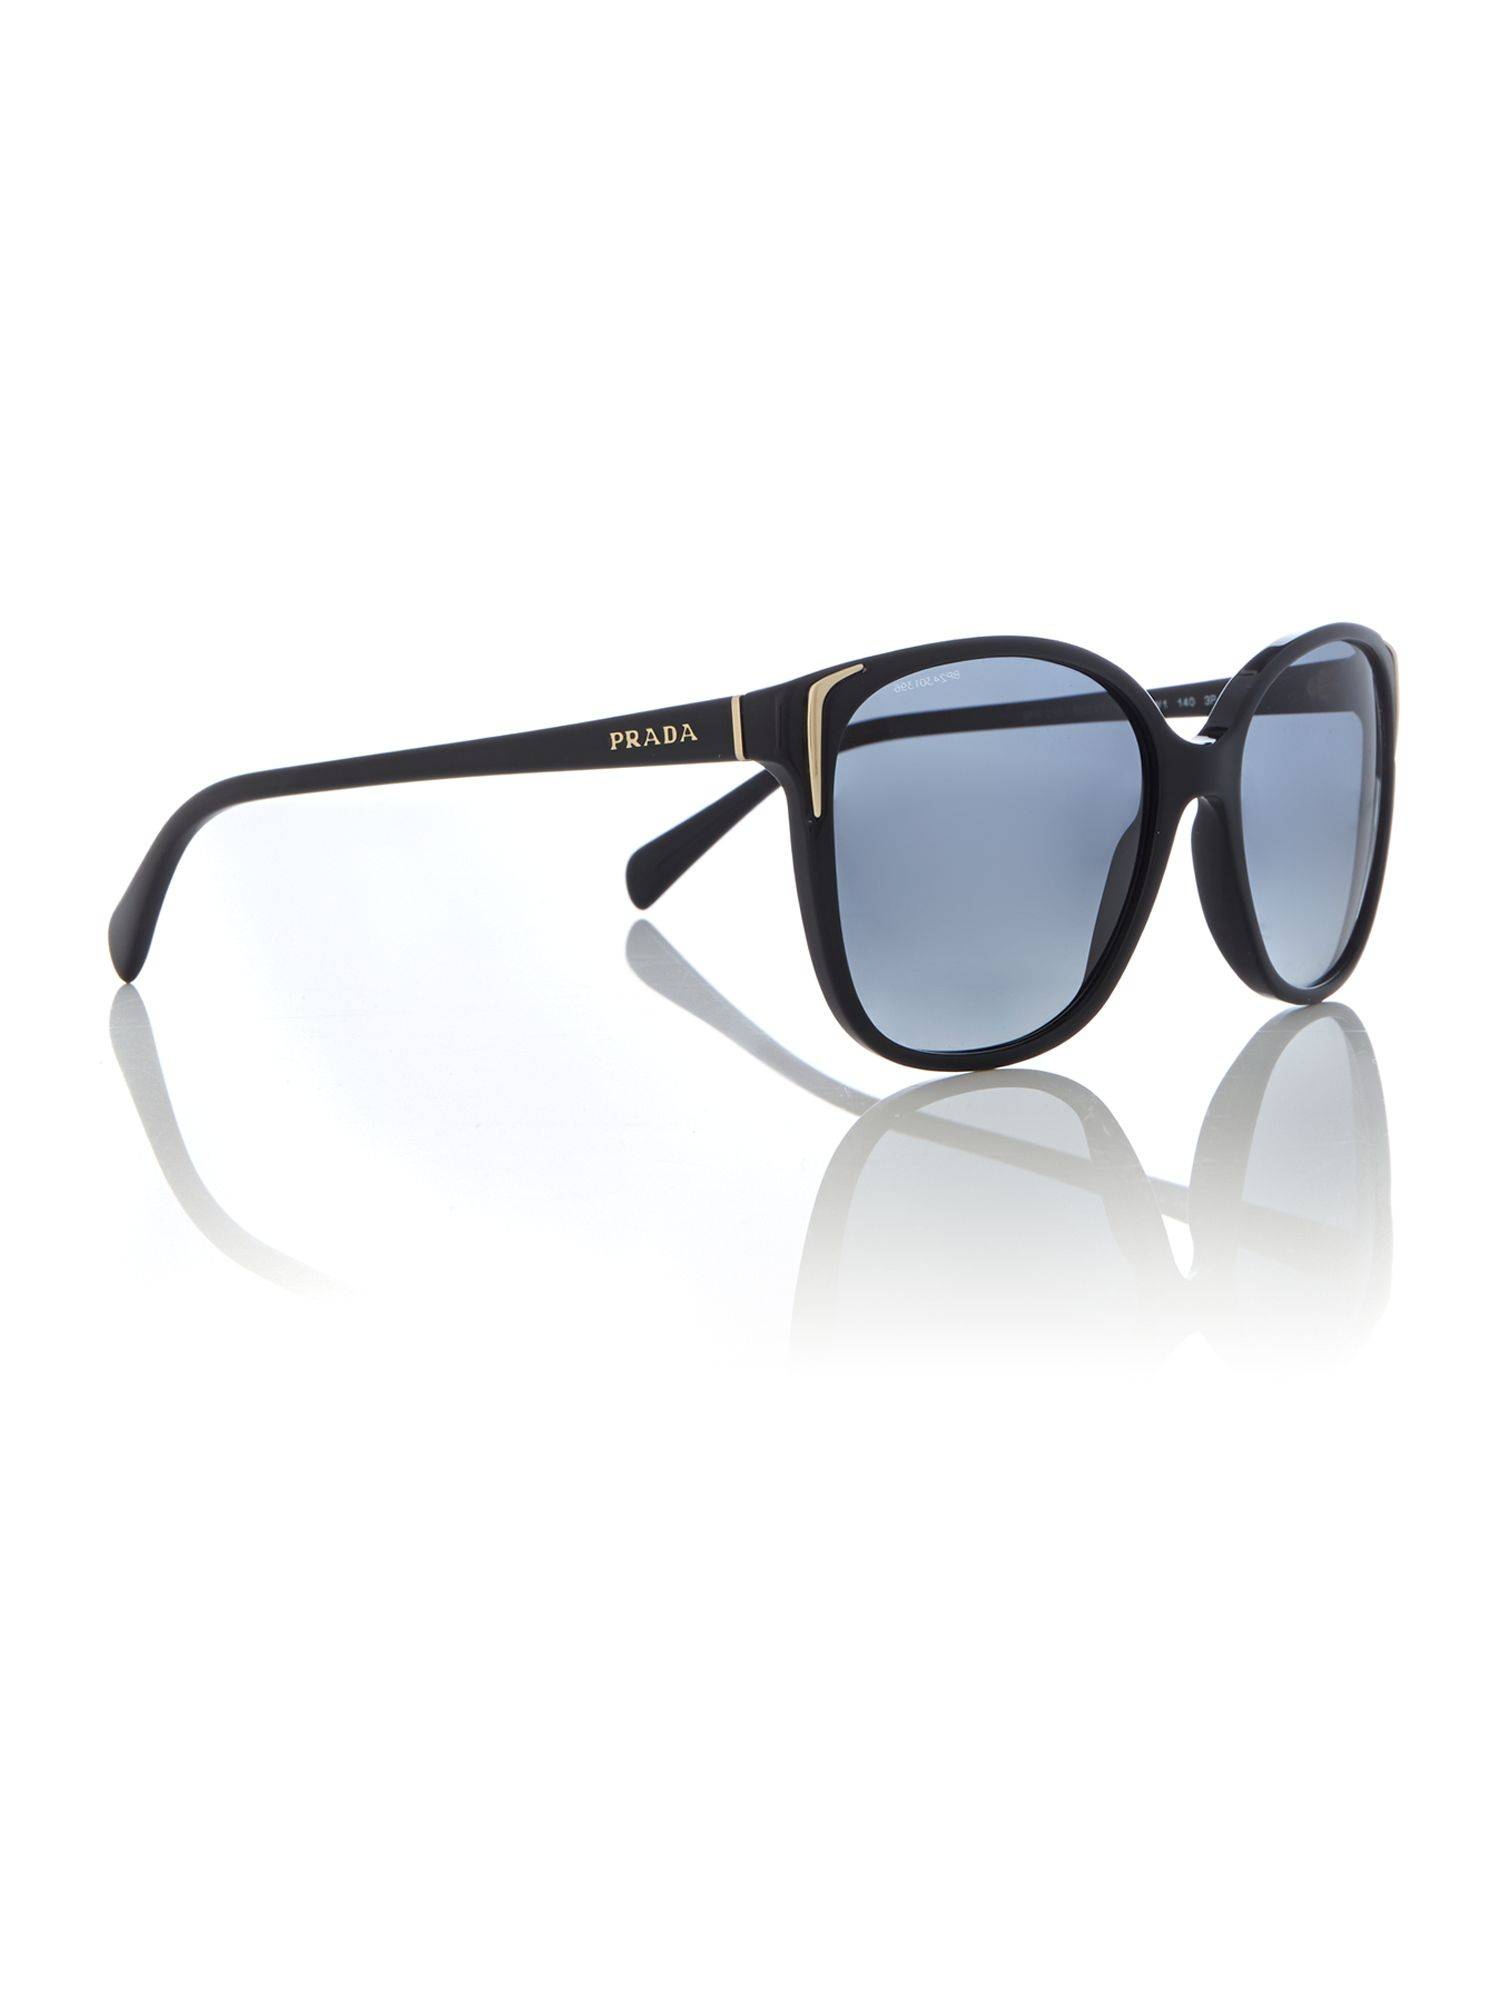 Prada Sunglasses 0PR 01OS Square Sunglasses